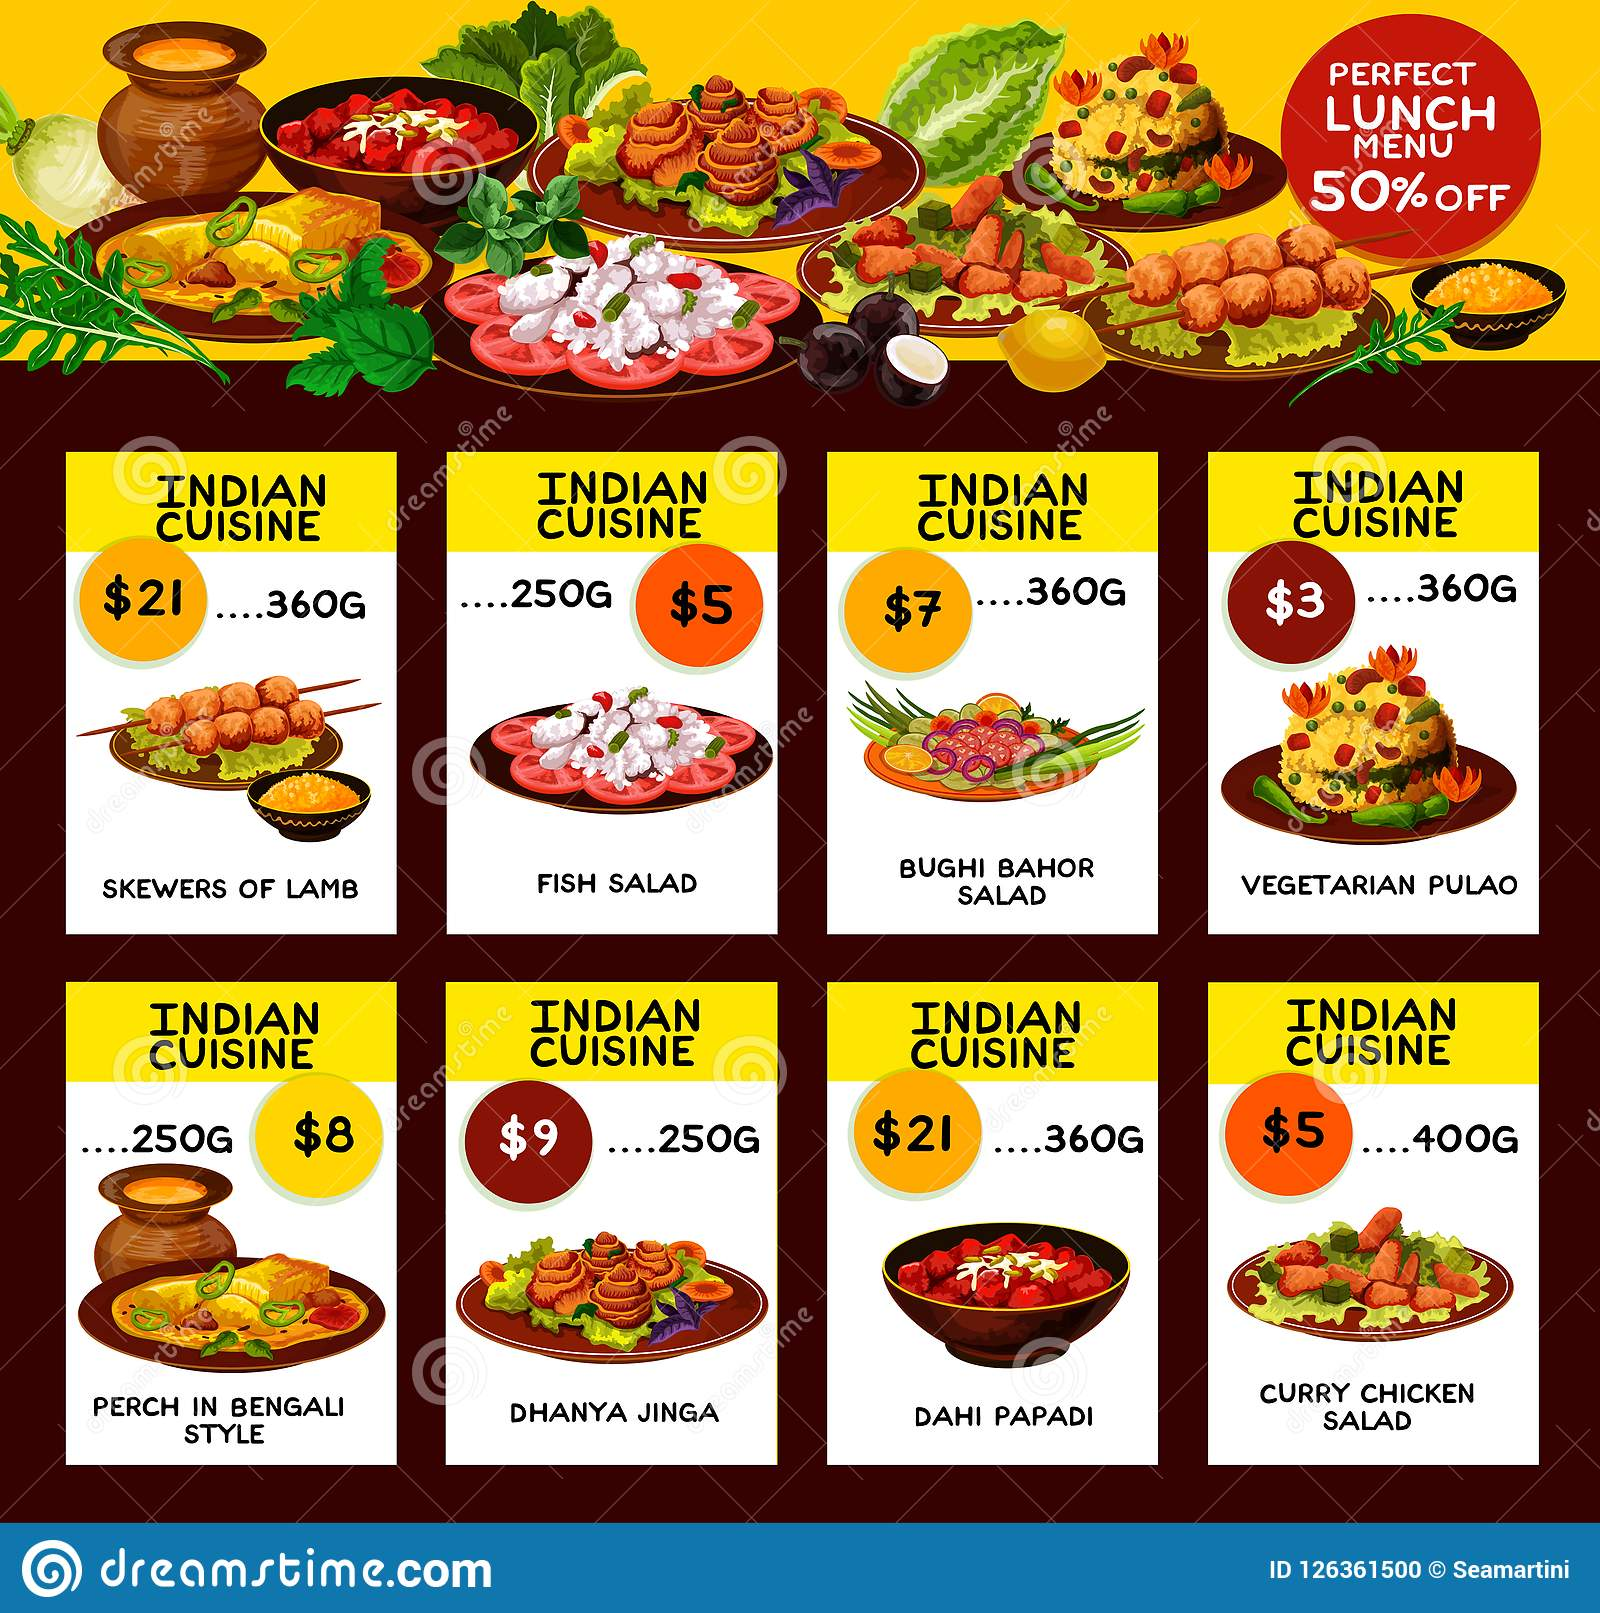 Indian Restaurant Menu Offer Cards Stock Vector Illustration Of Chili Design 126361500